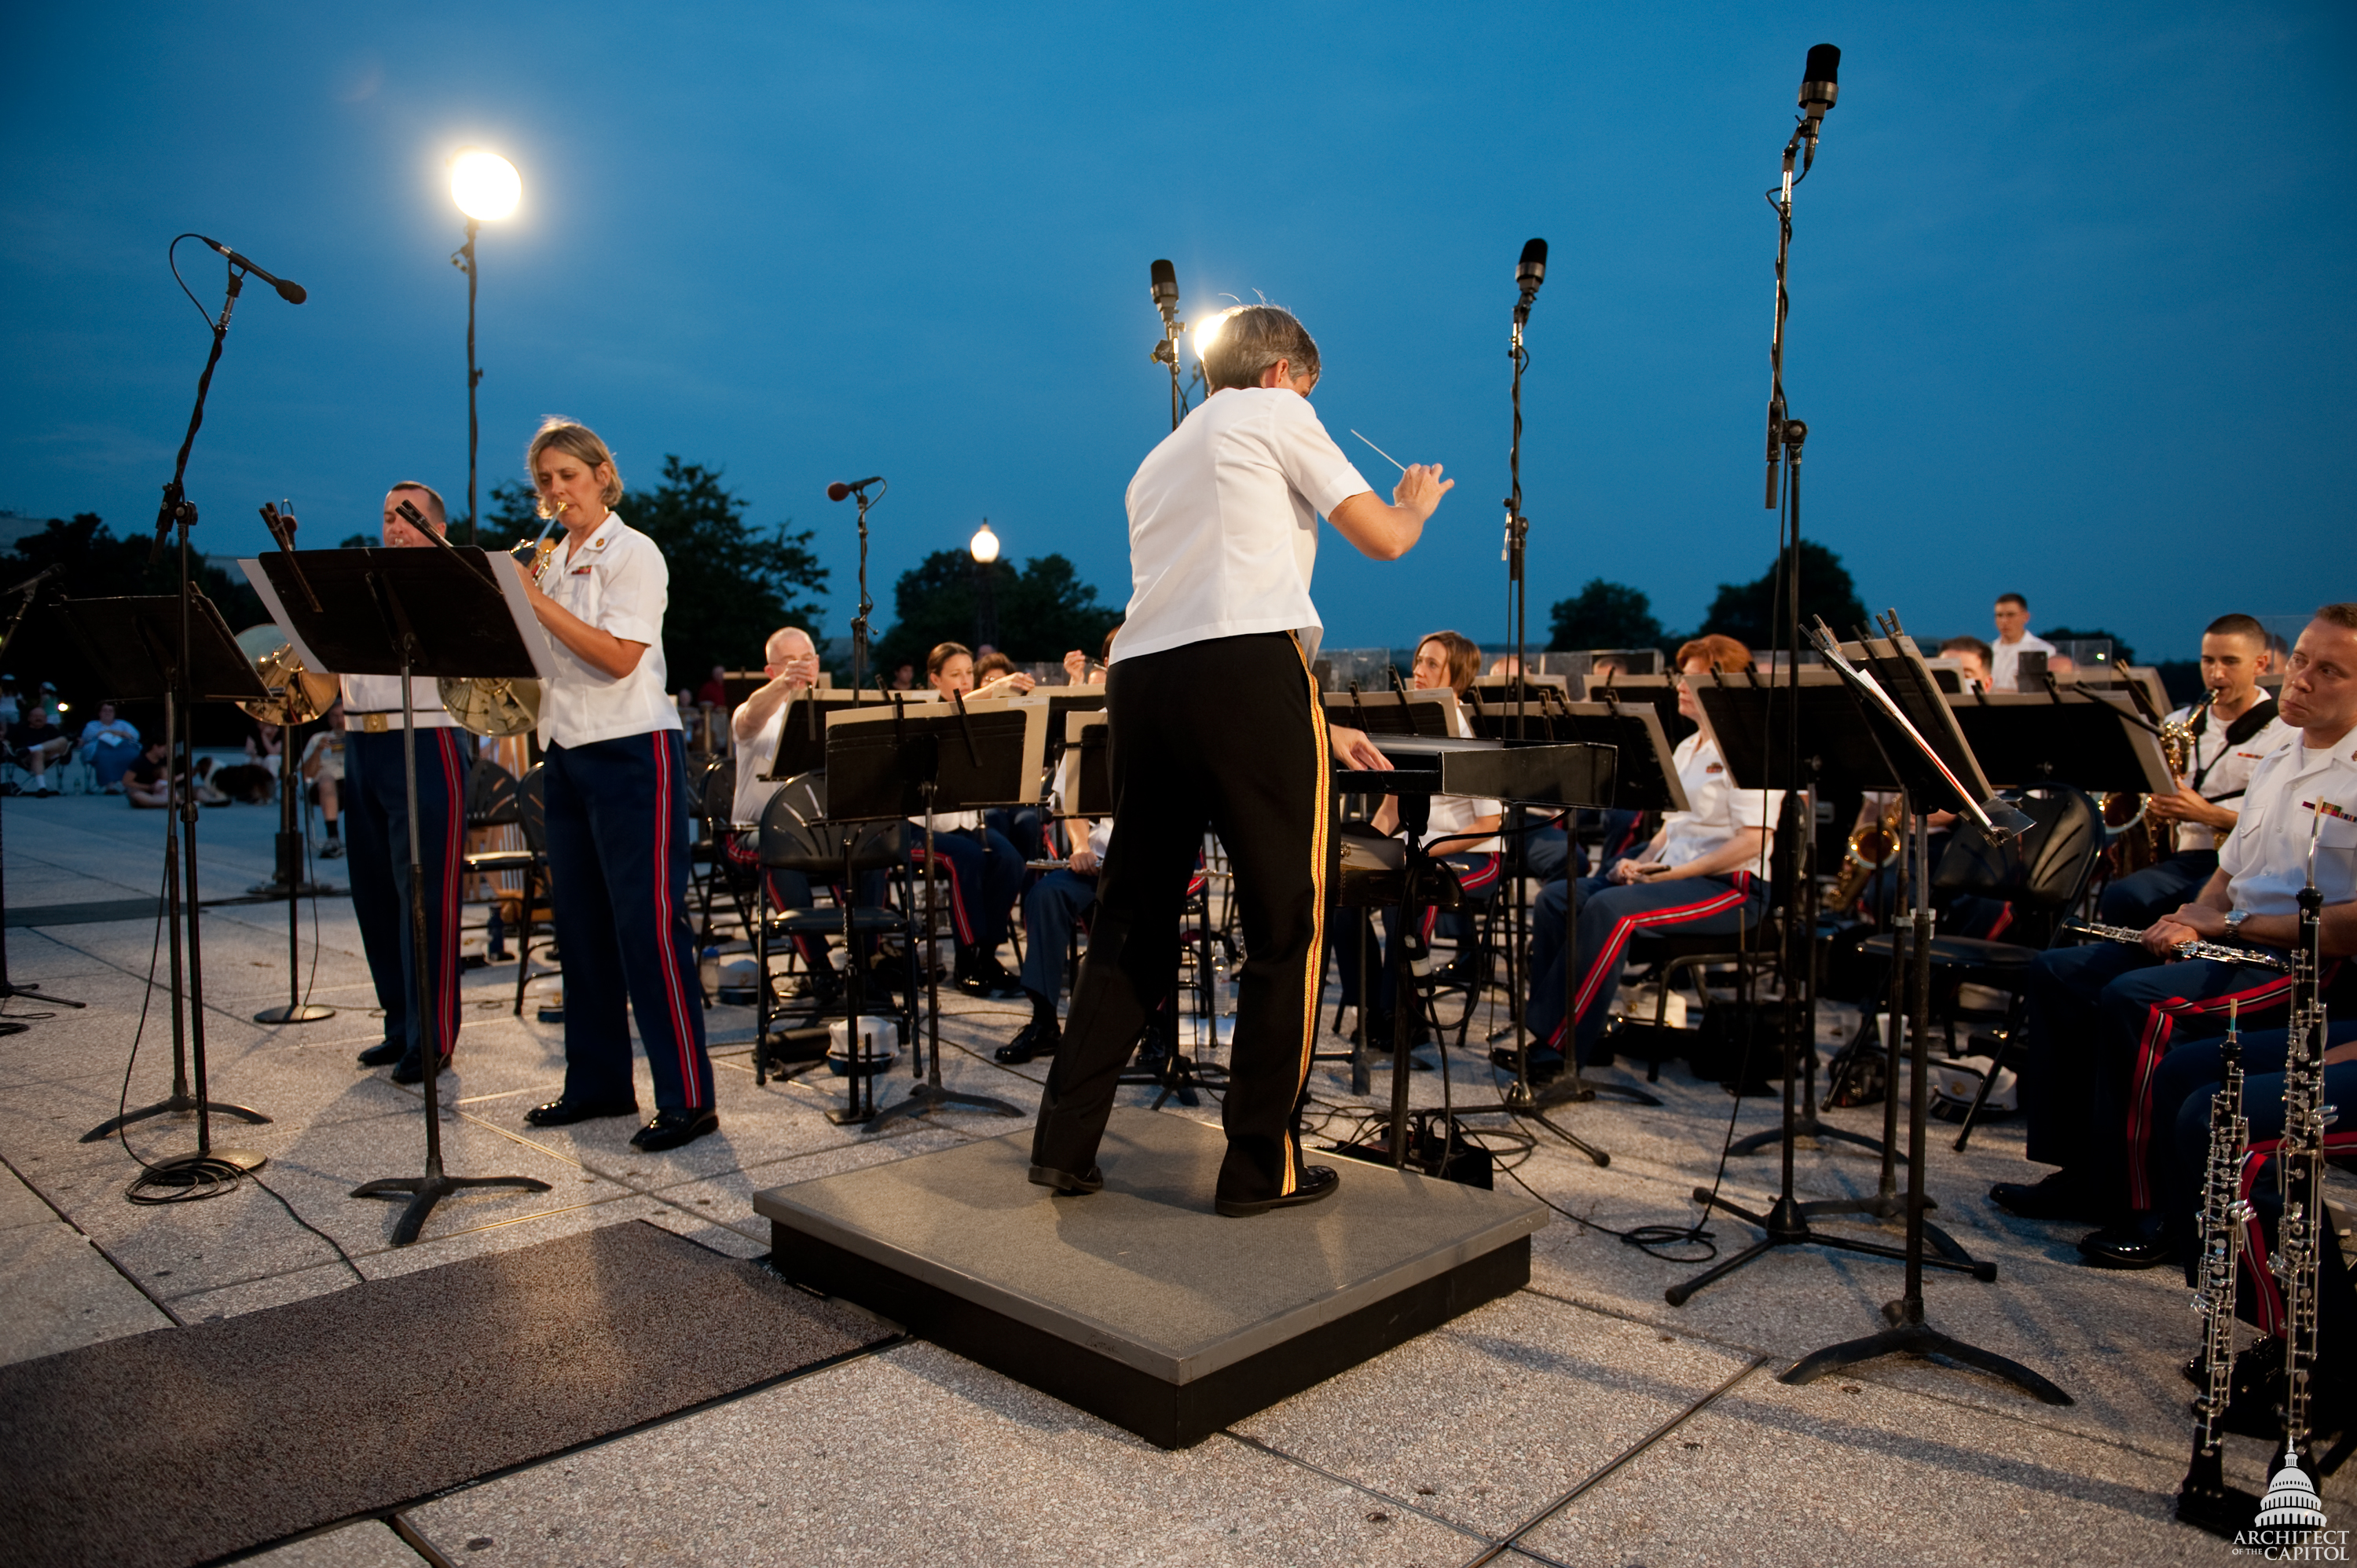 The U.S. Marine Corps Band performs on the West Front of the Capitol as part of the 2009 Summer Concert Series.